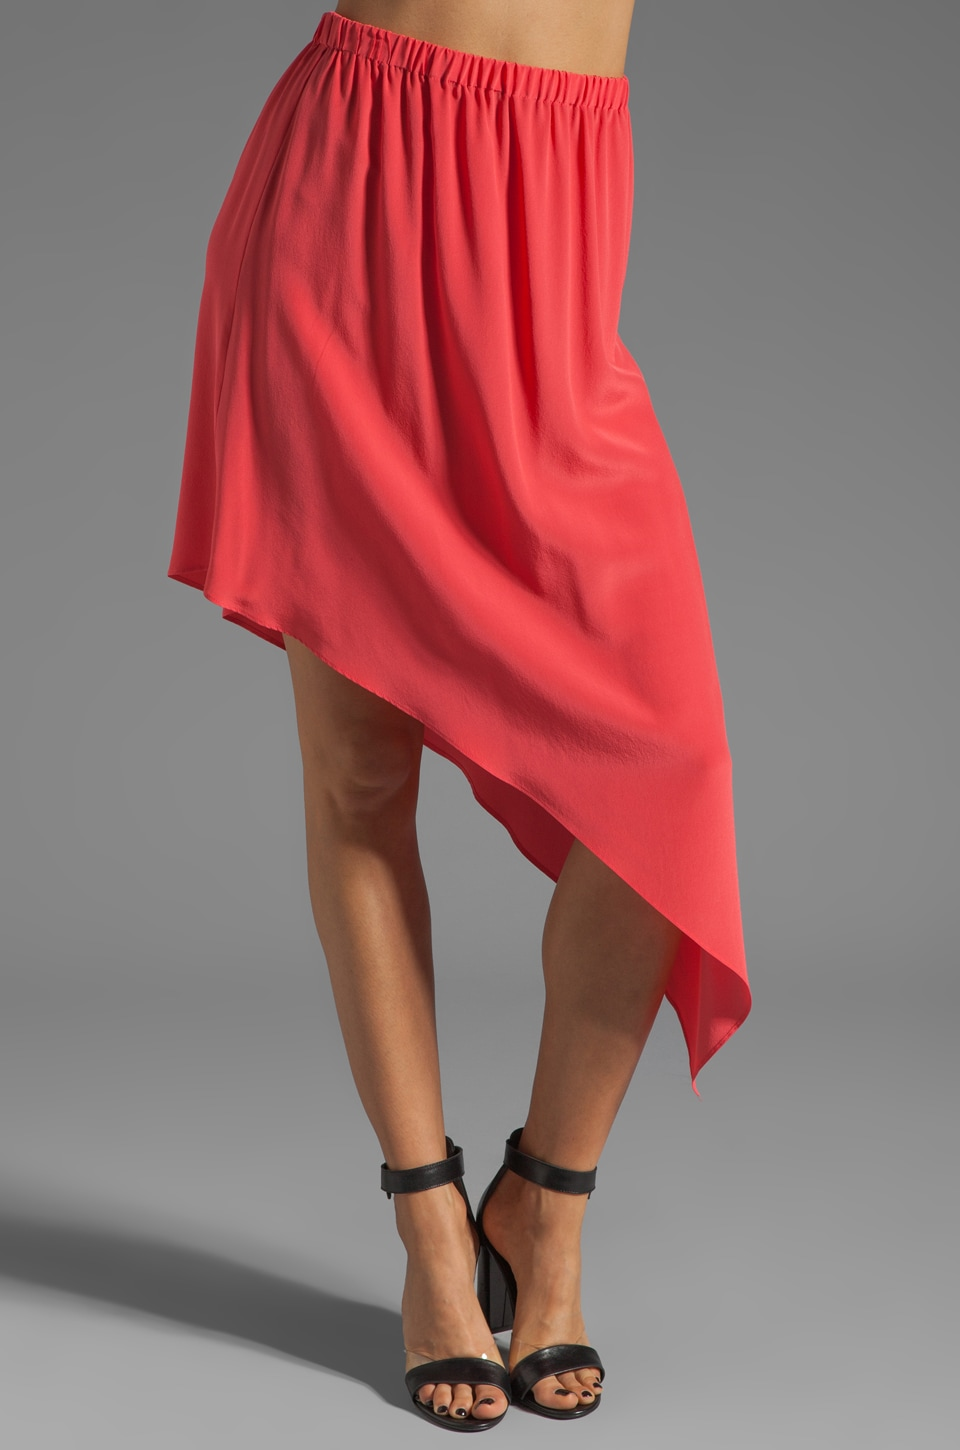 Twelfth Street By Cynthia Vincent Reversible Asymetrical Skirt in Coral